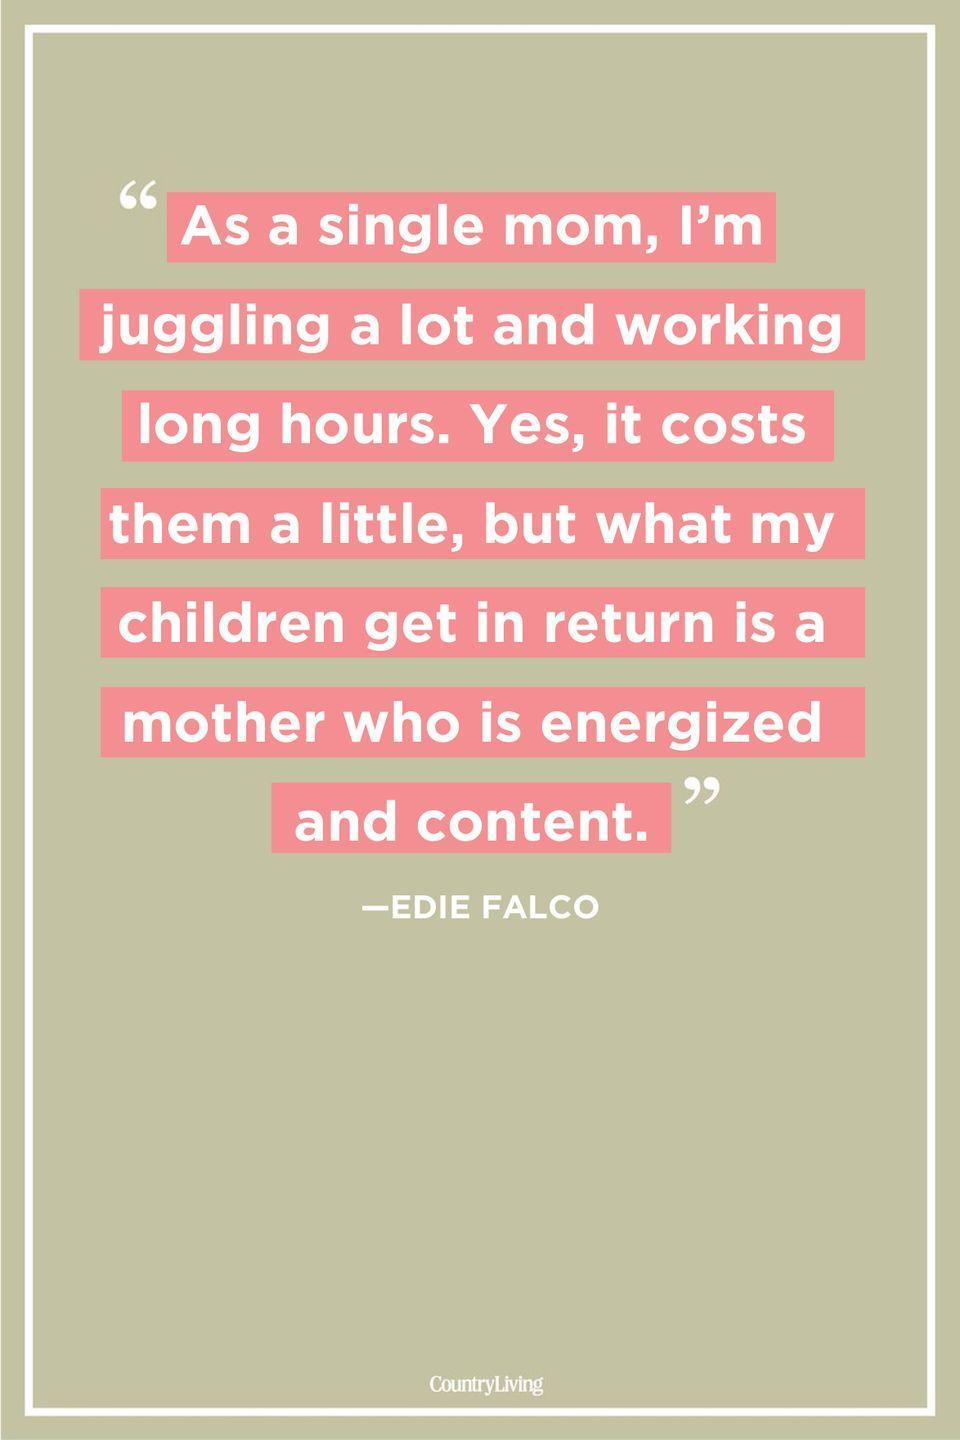 "<p>""As a single mom, I'm juggling a lot and working long hours. Yes, it costs them a little, but what my children get in return is a mother who is energized and content."" </p>"